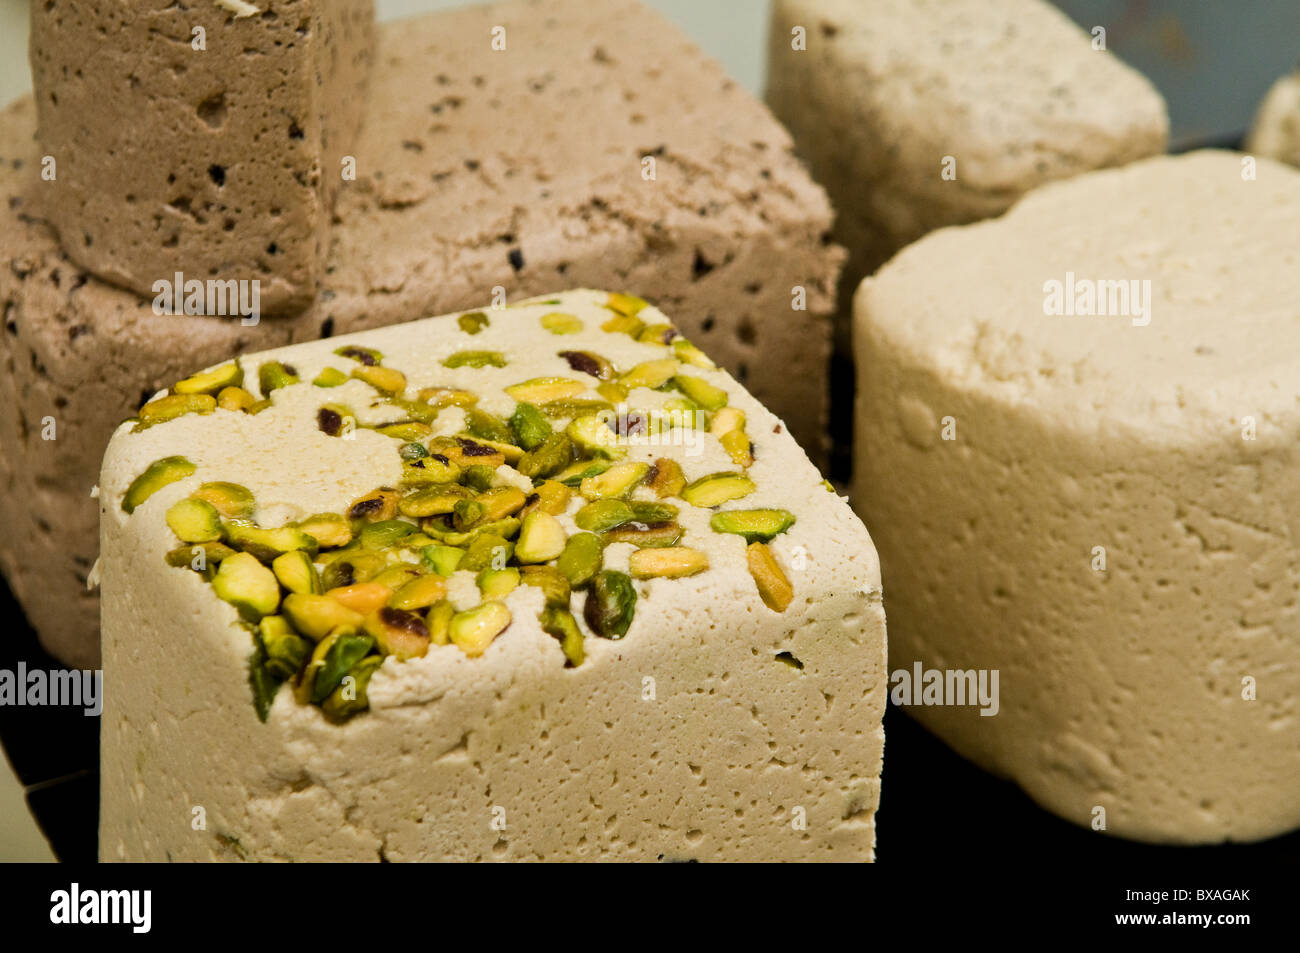 Halva is one of the most popular traditional sweets in the middle east. - Stock Image